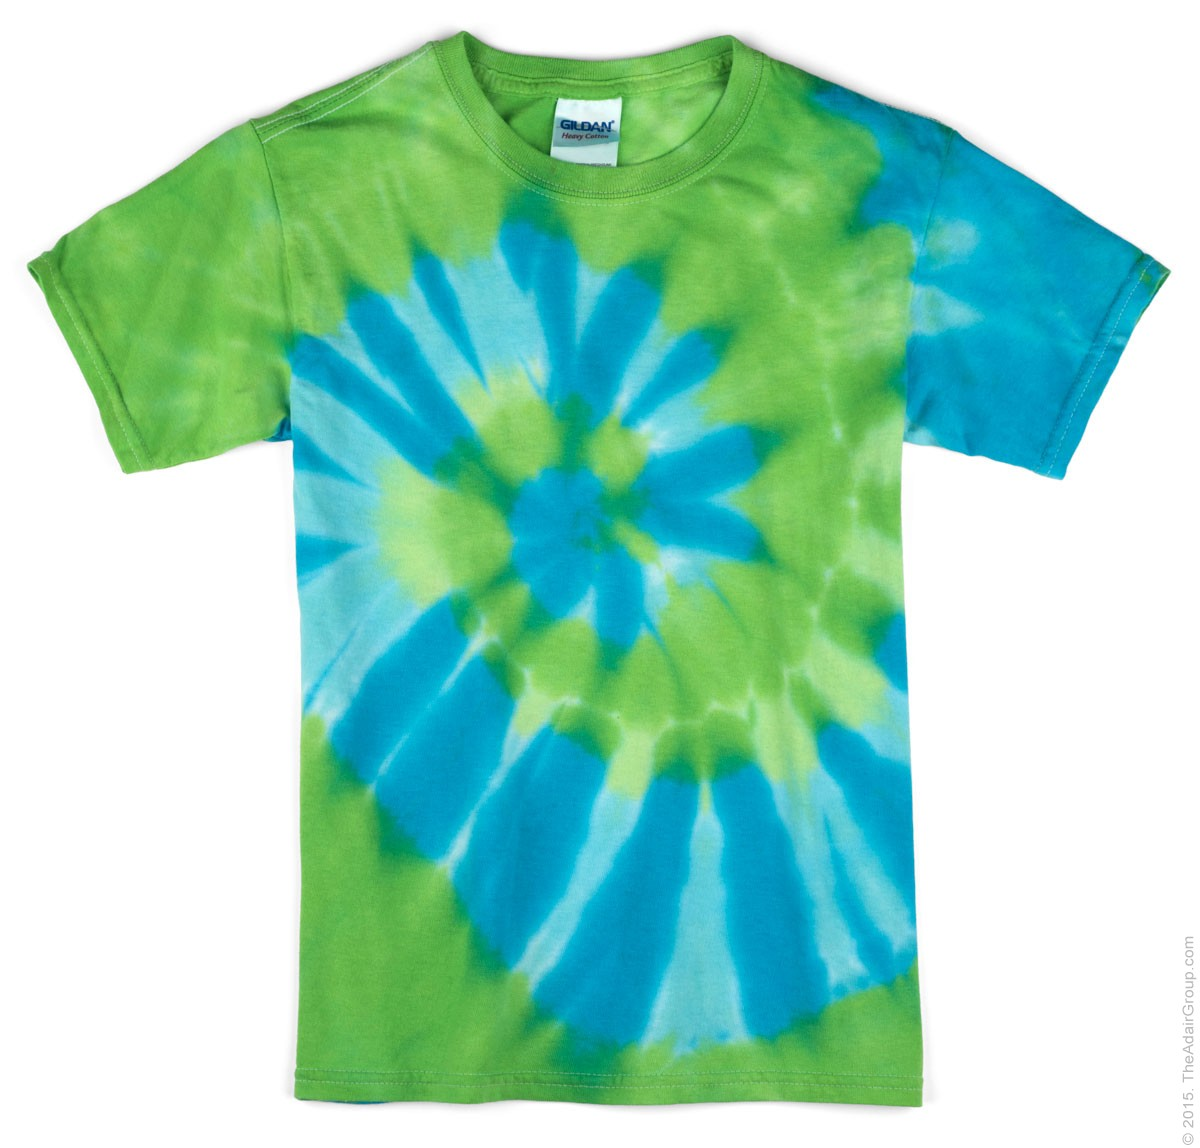 Image result for green and blue tie dye shirt